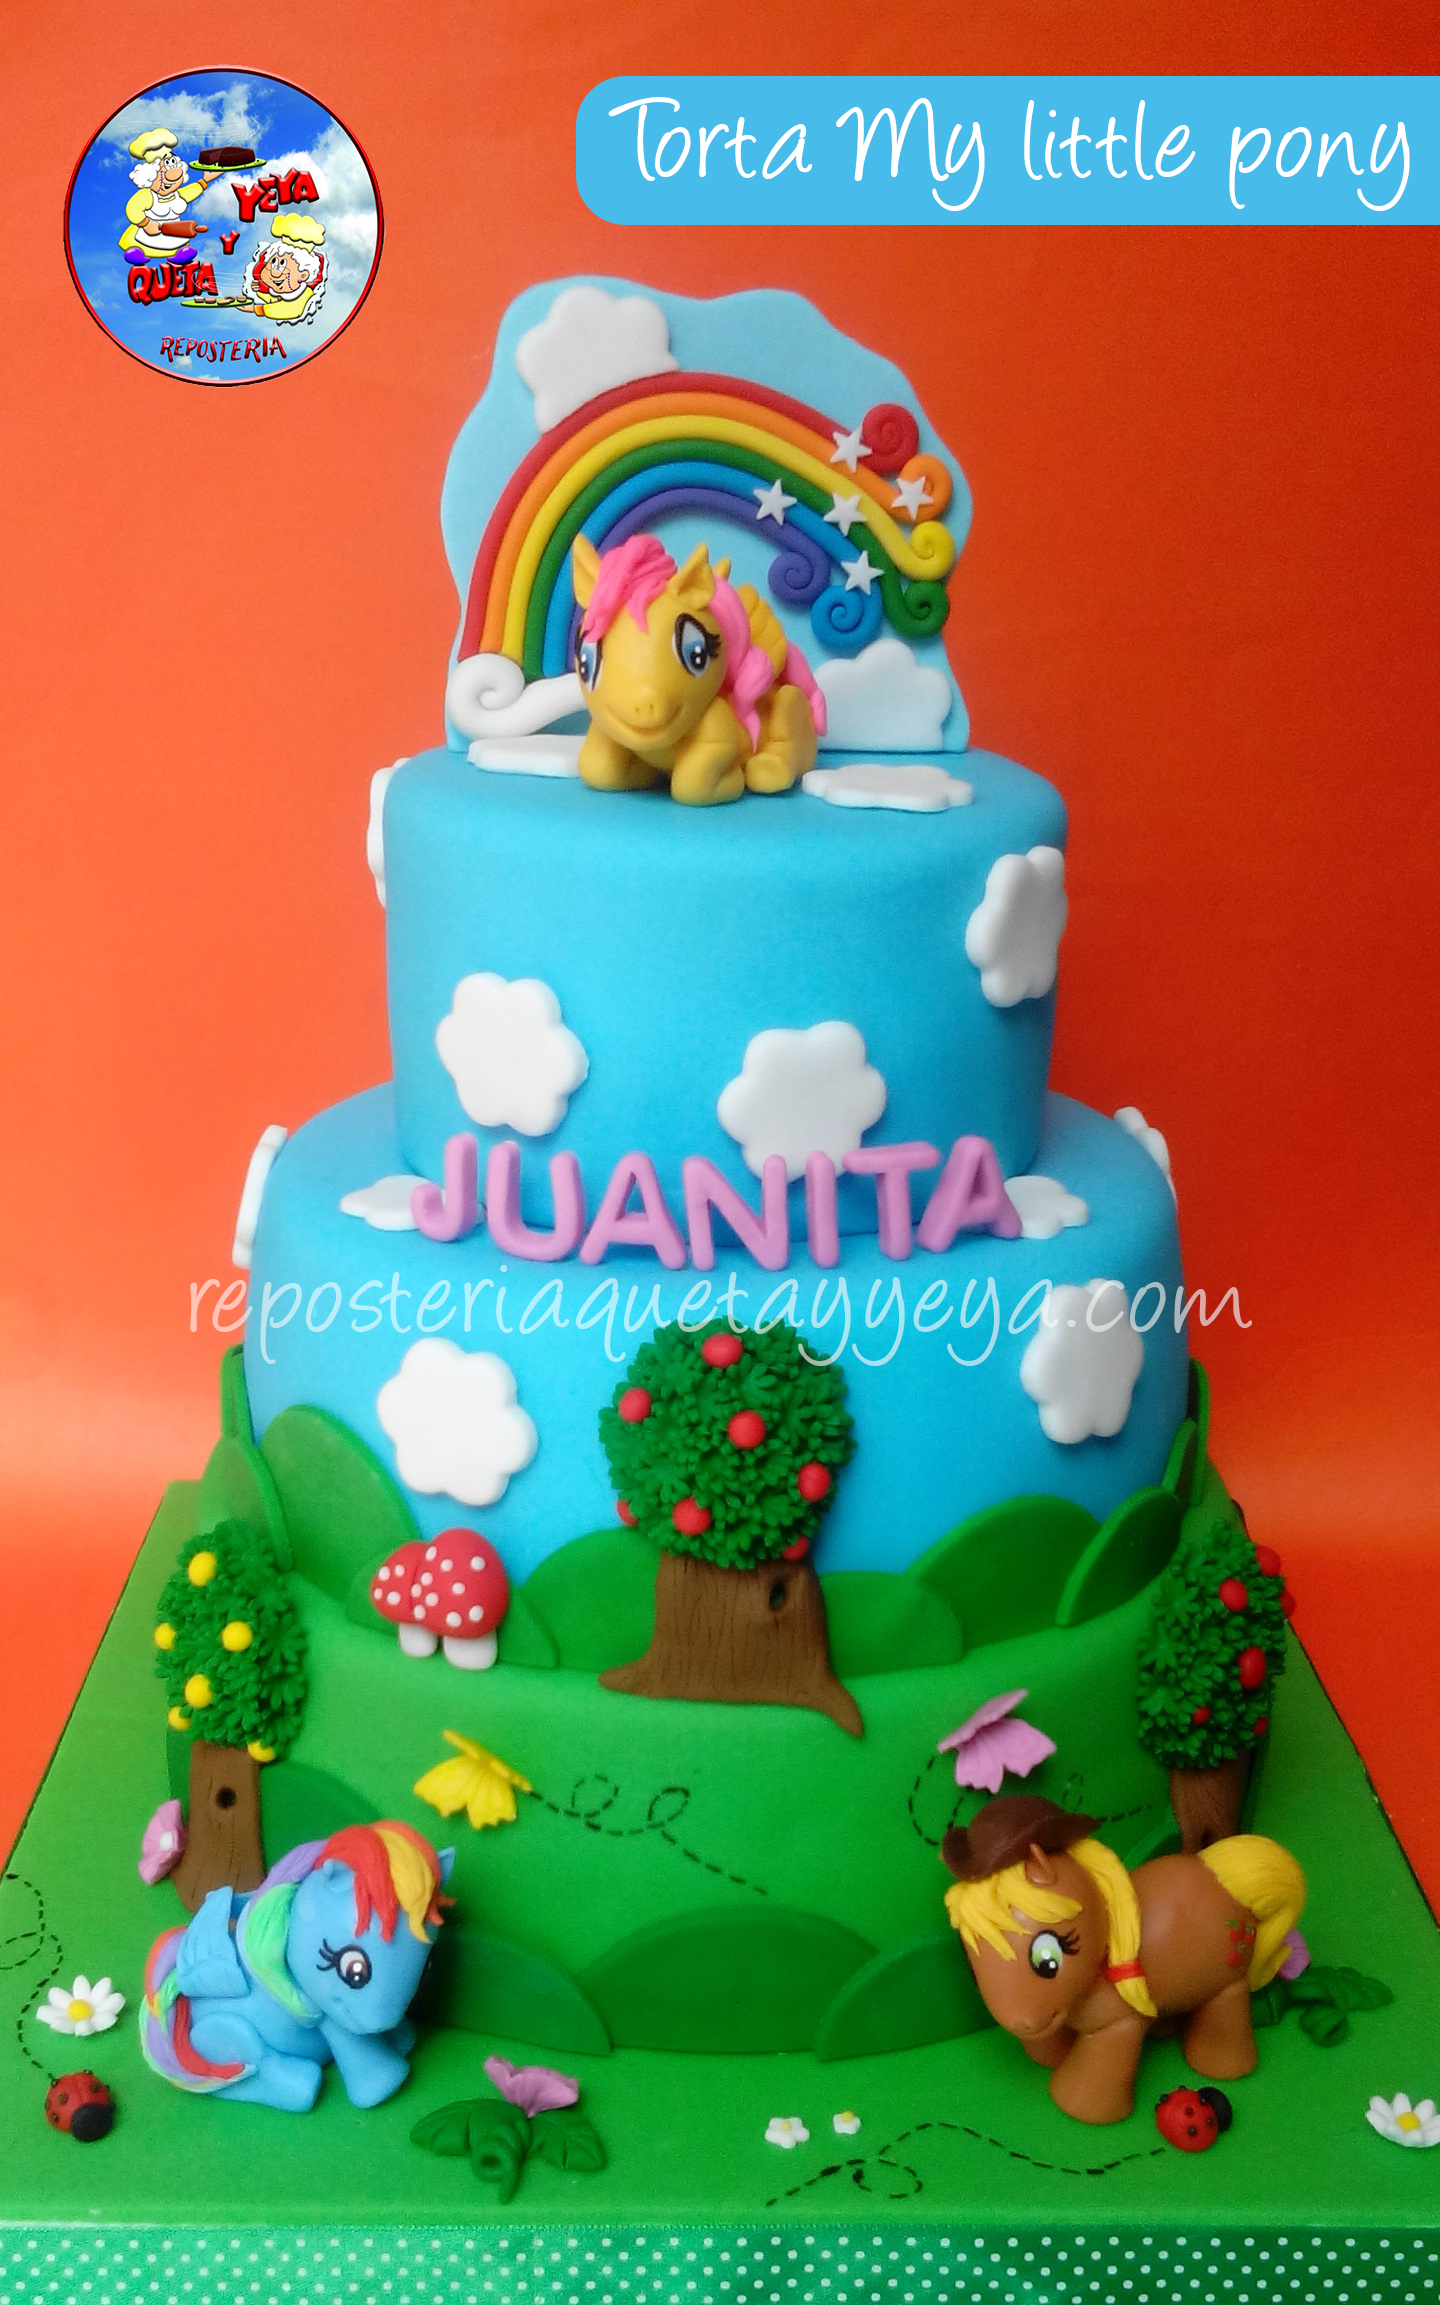 Torta My Little Pony My Little Pony Cake https://www ...